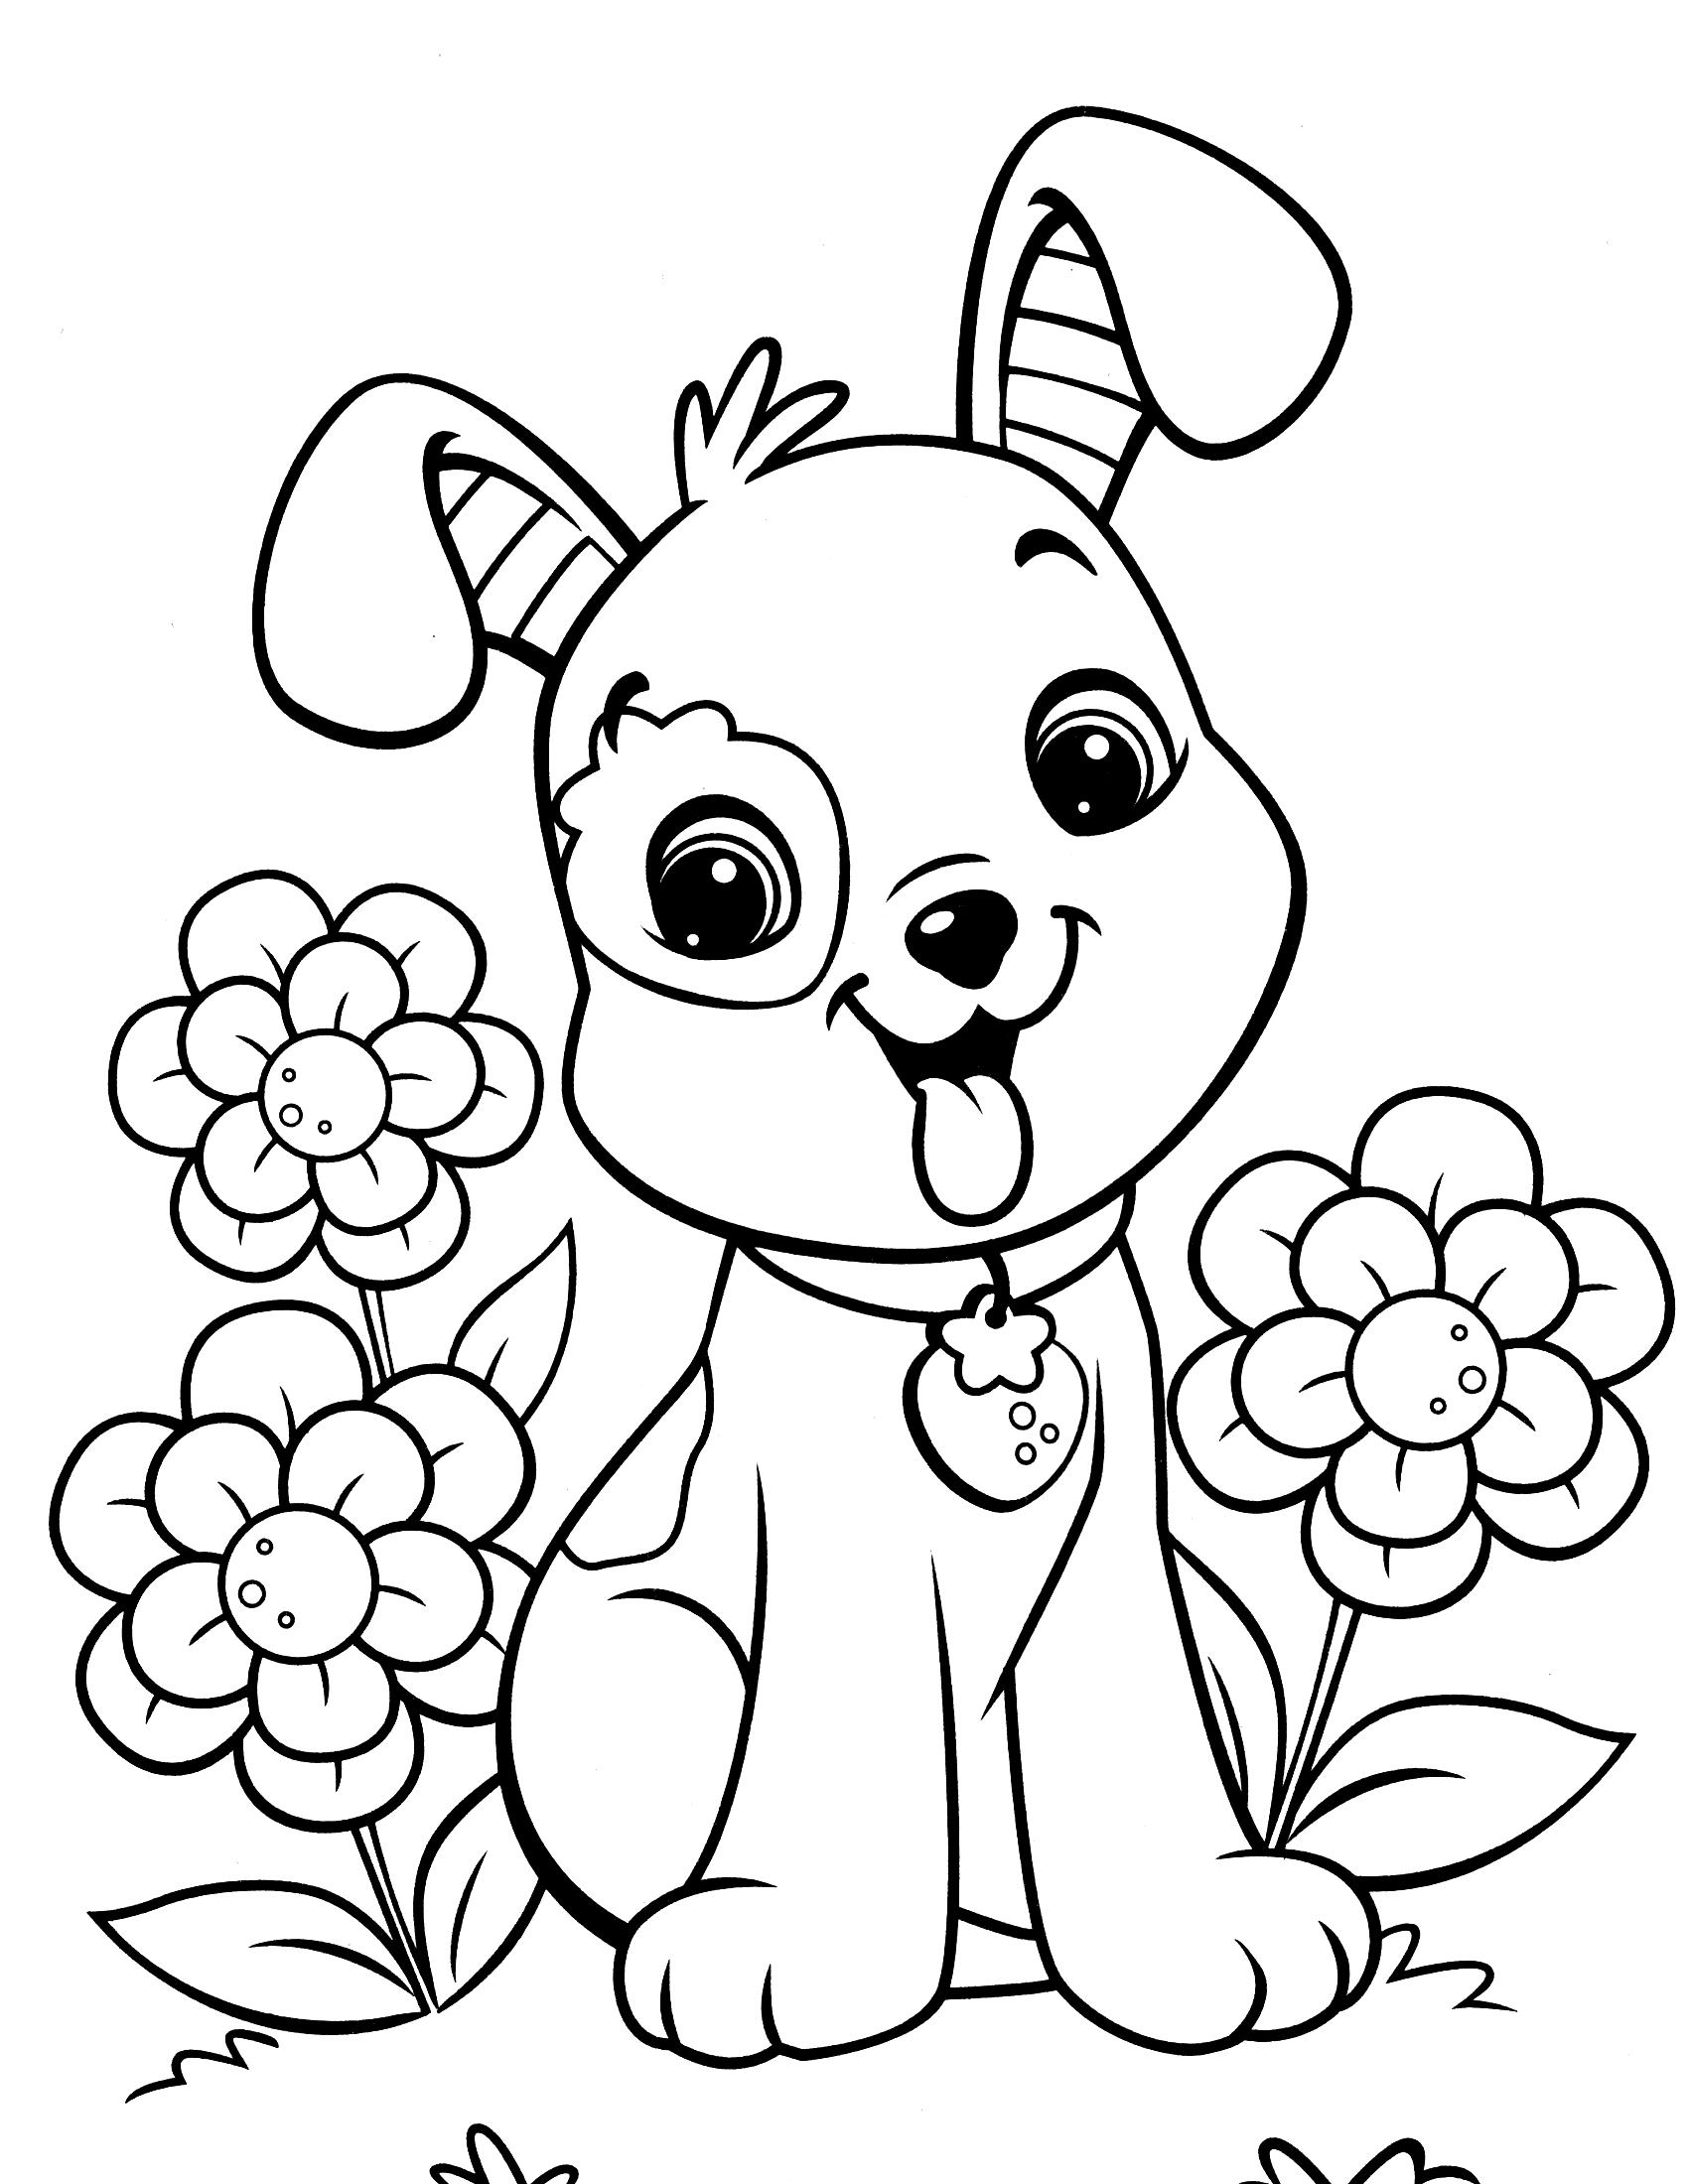 kids coloring puppy puppy coloring pages best coloring pages for kids coloring kids puppy